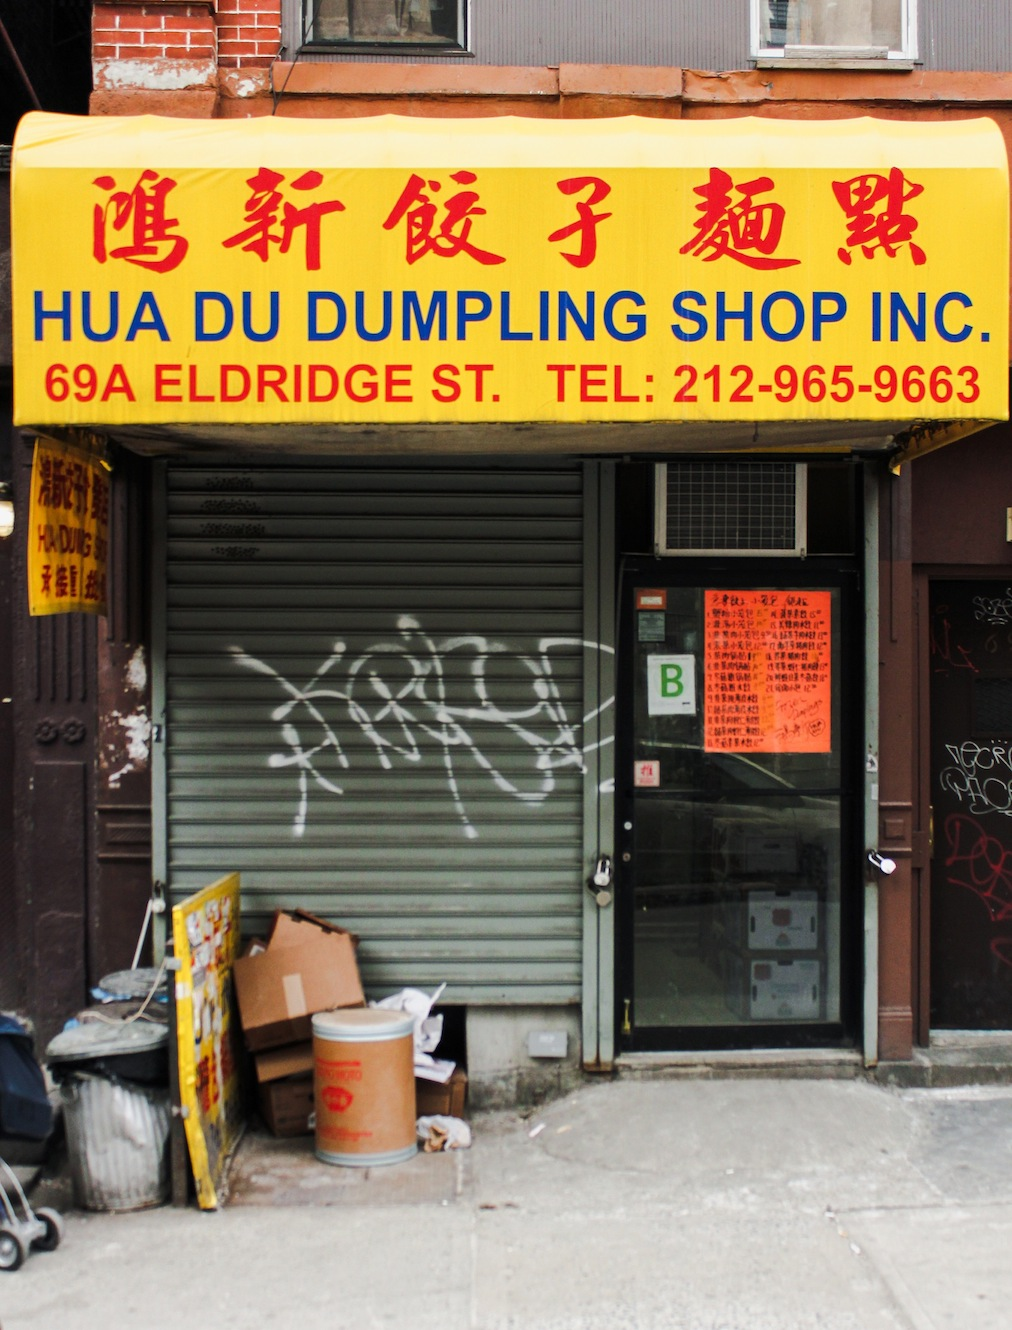 Restaurants with a B letter grade are fined between $2800-$4200 a year. Photo by Brian Nunes.